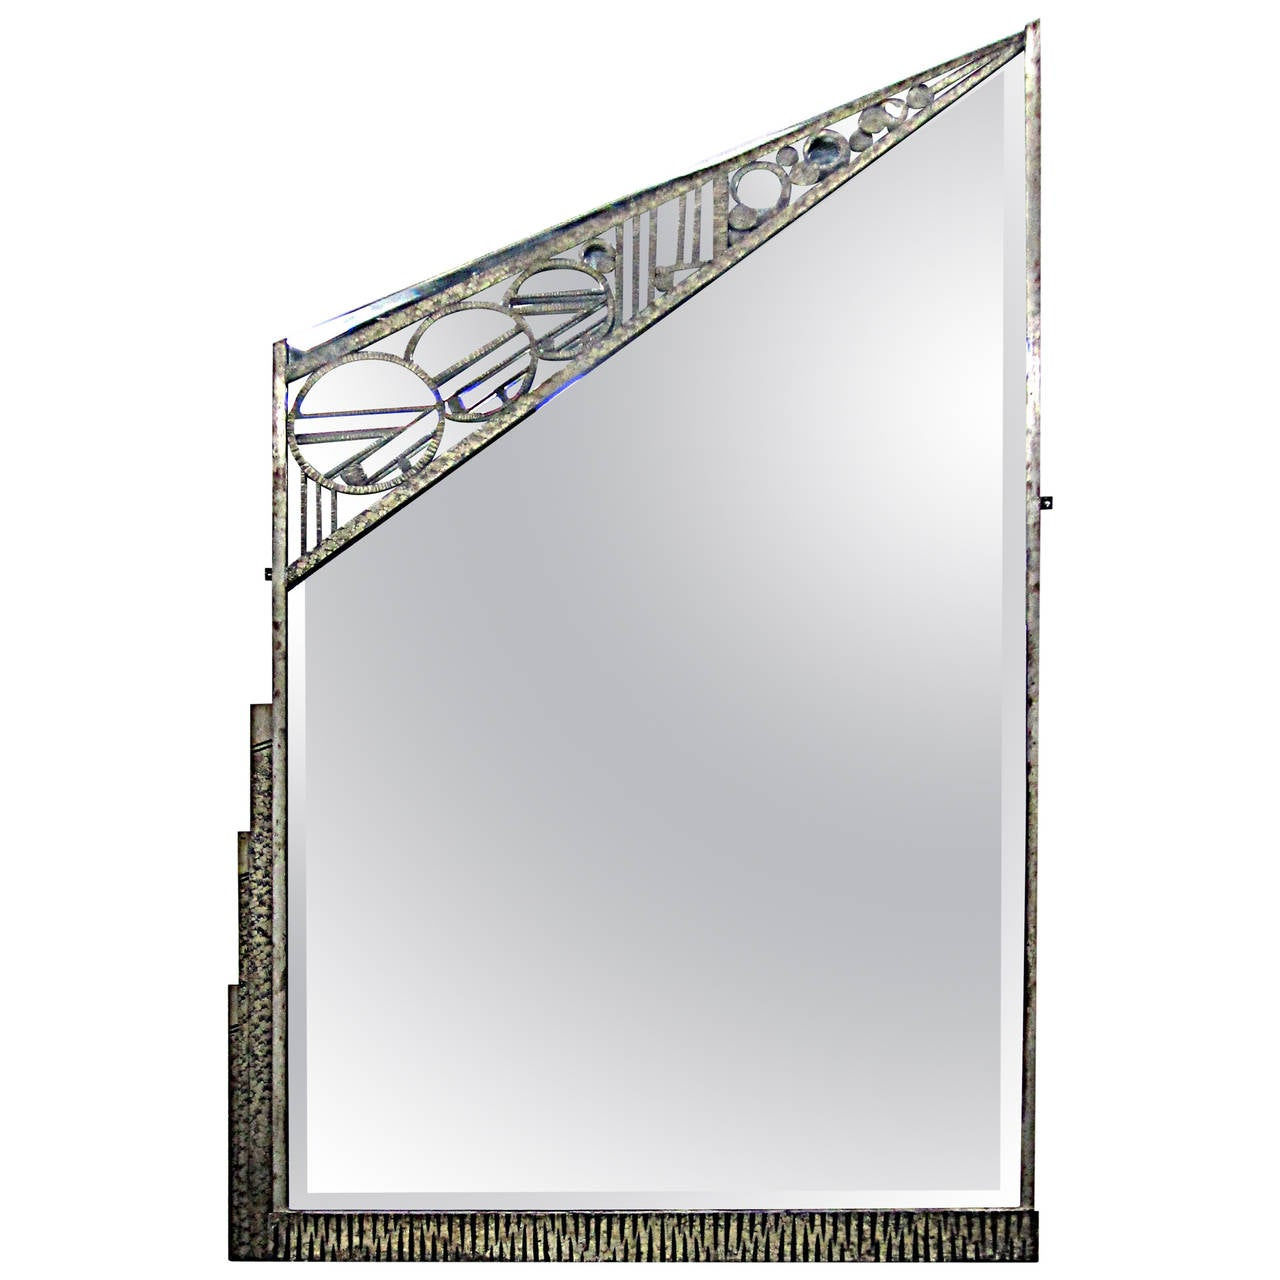 Geometric French Art Deco Wrought-Iron Mirror by Charles Piguet